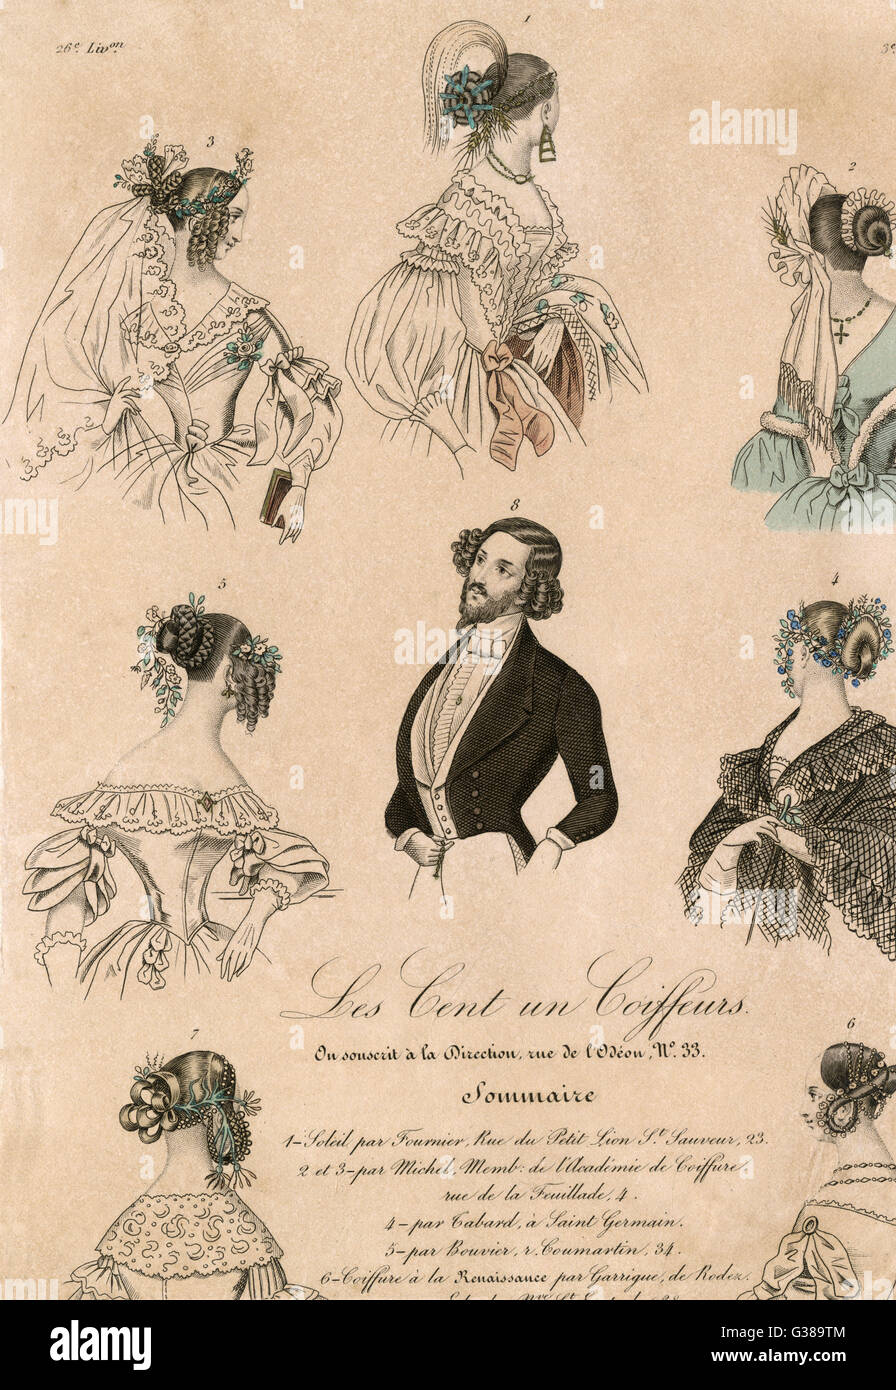 various hairs styles for men  and women        Date: 1838 - Stock Image